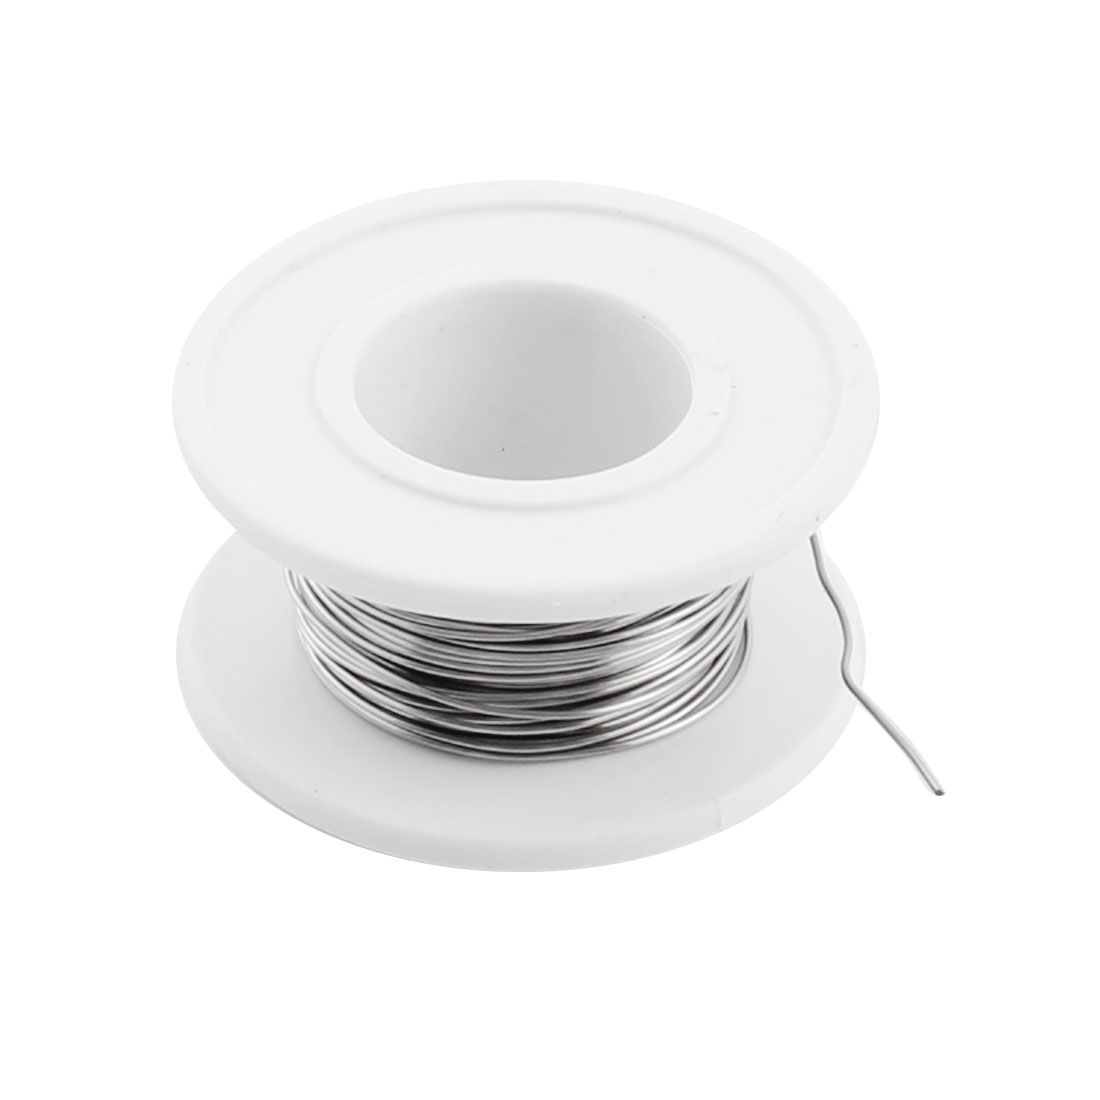 7.5meter 25ft Long 0.5mm Diameter AWG24 Cable Nichrome Resistance Heating Coil Resistor Wire Cable